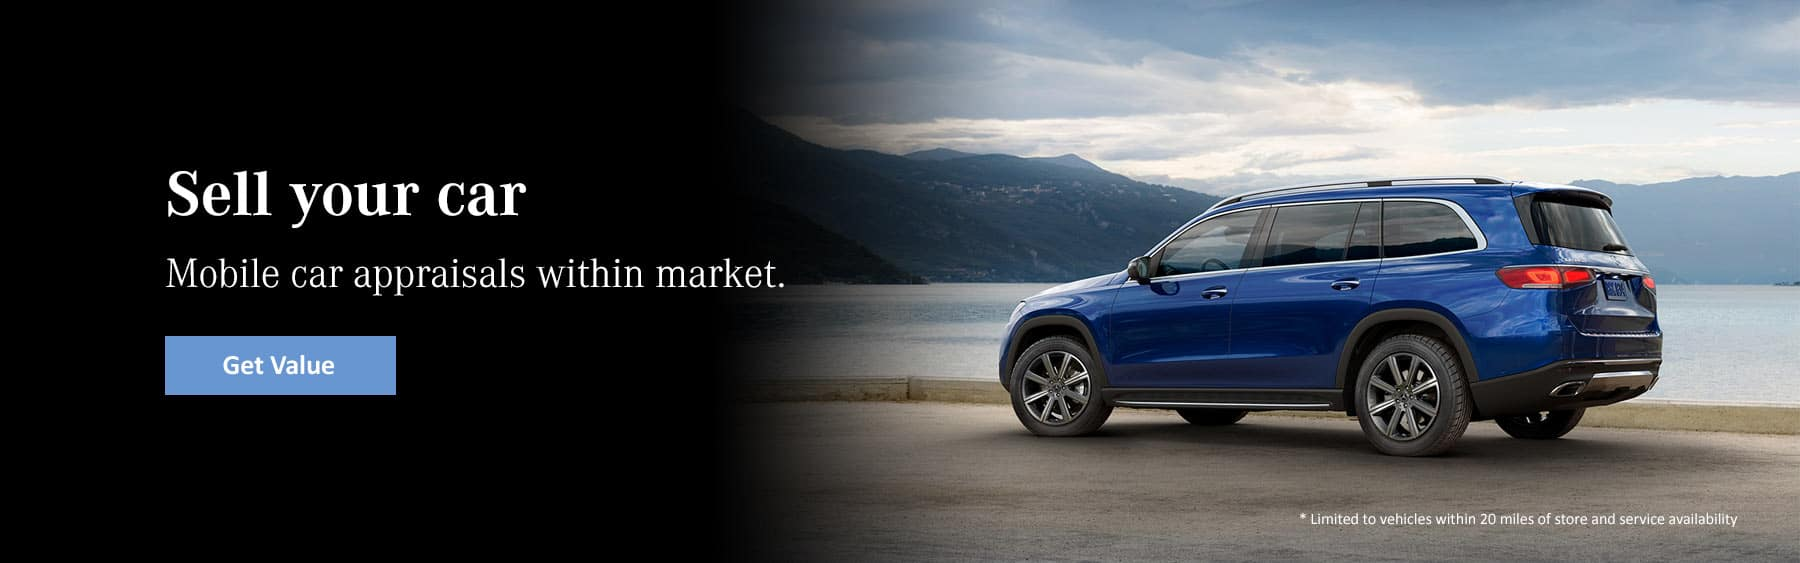 Sell your car in anchorage